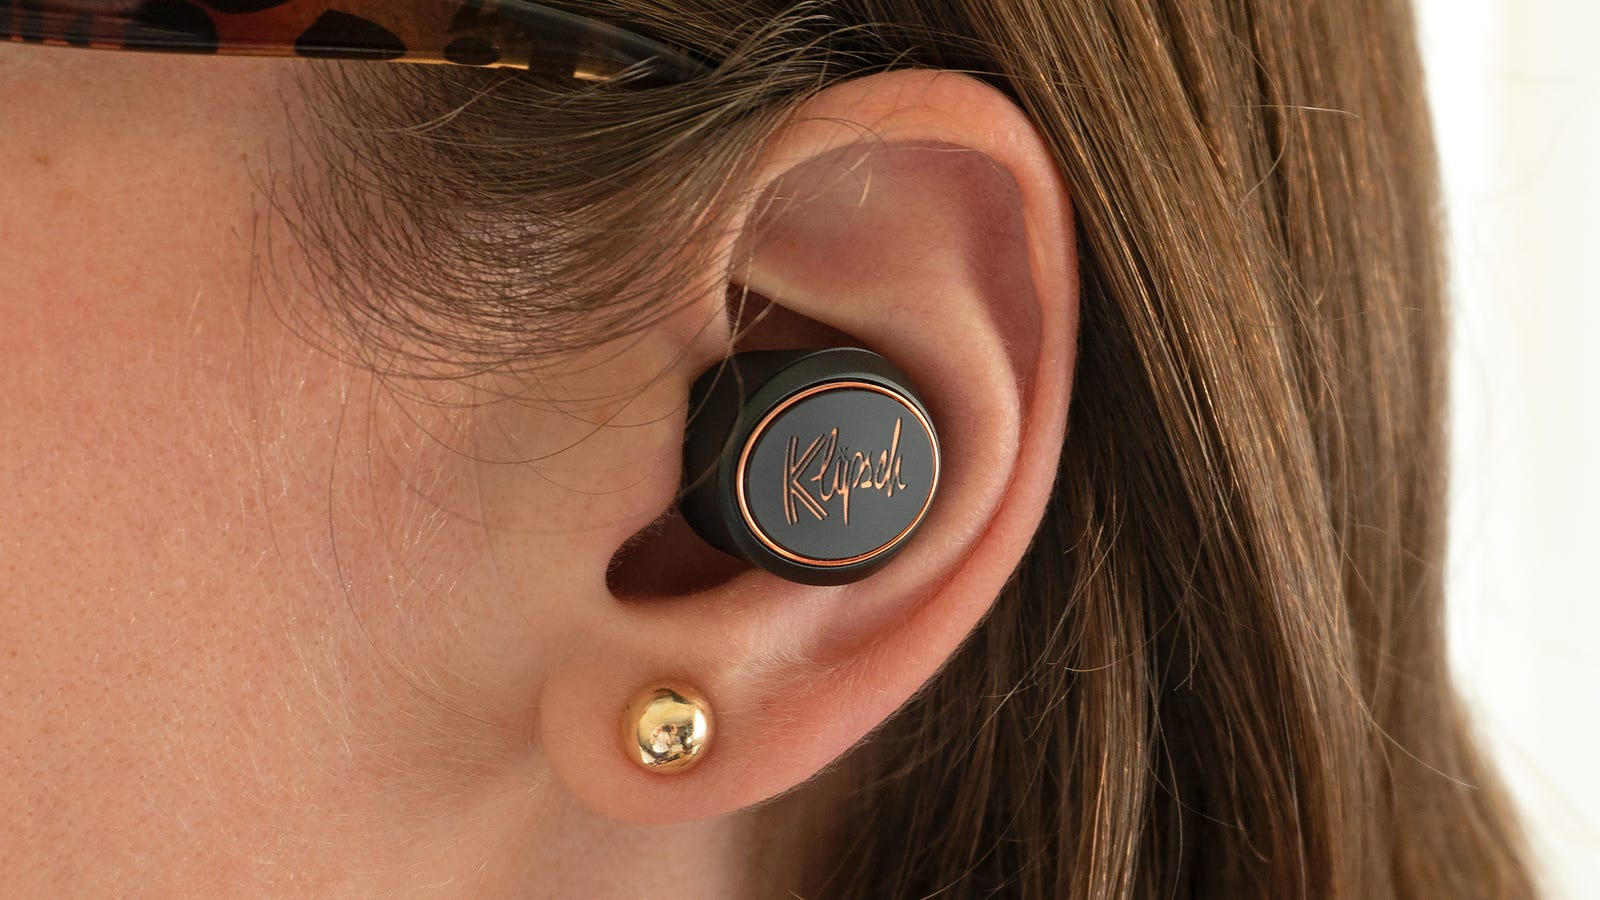 The True Wireless earbuds do stick out of your ears while worn, and the Klipsch branding isn't subtle.